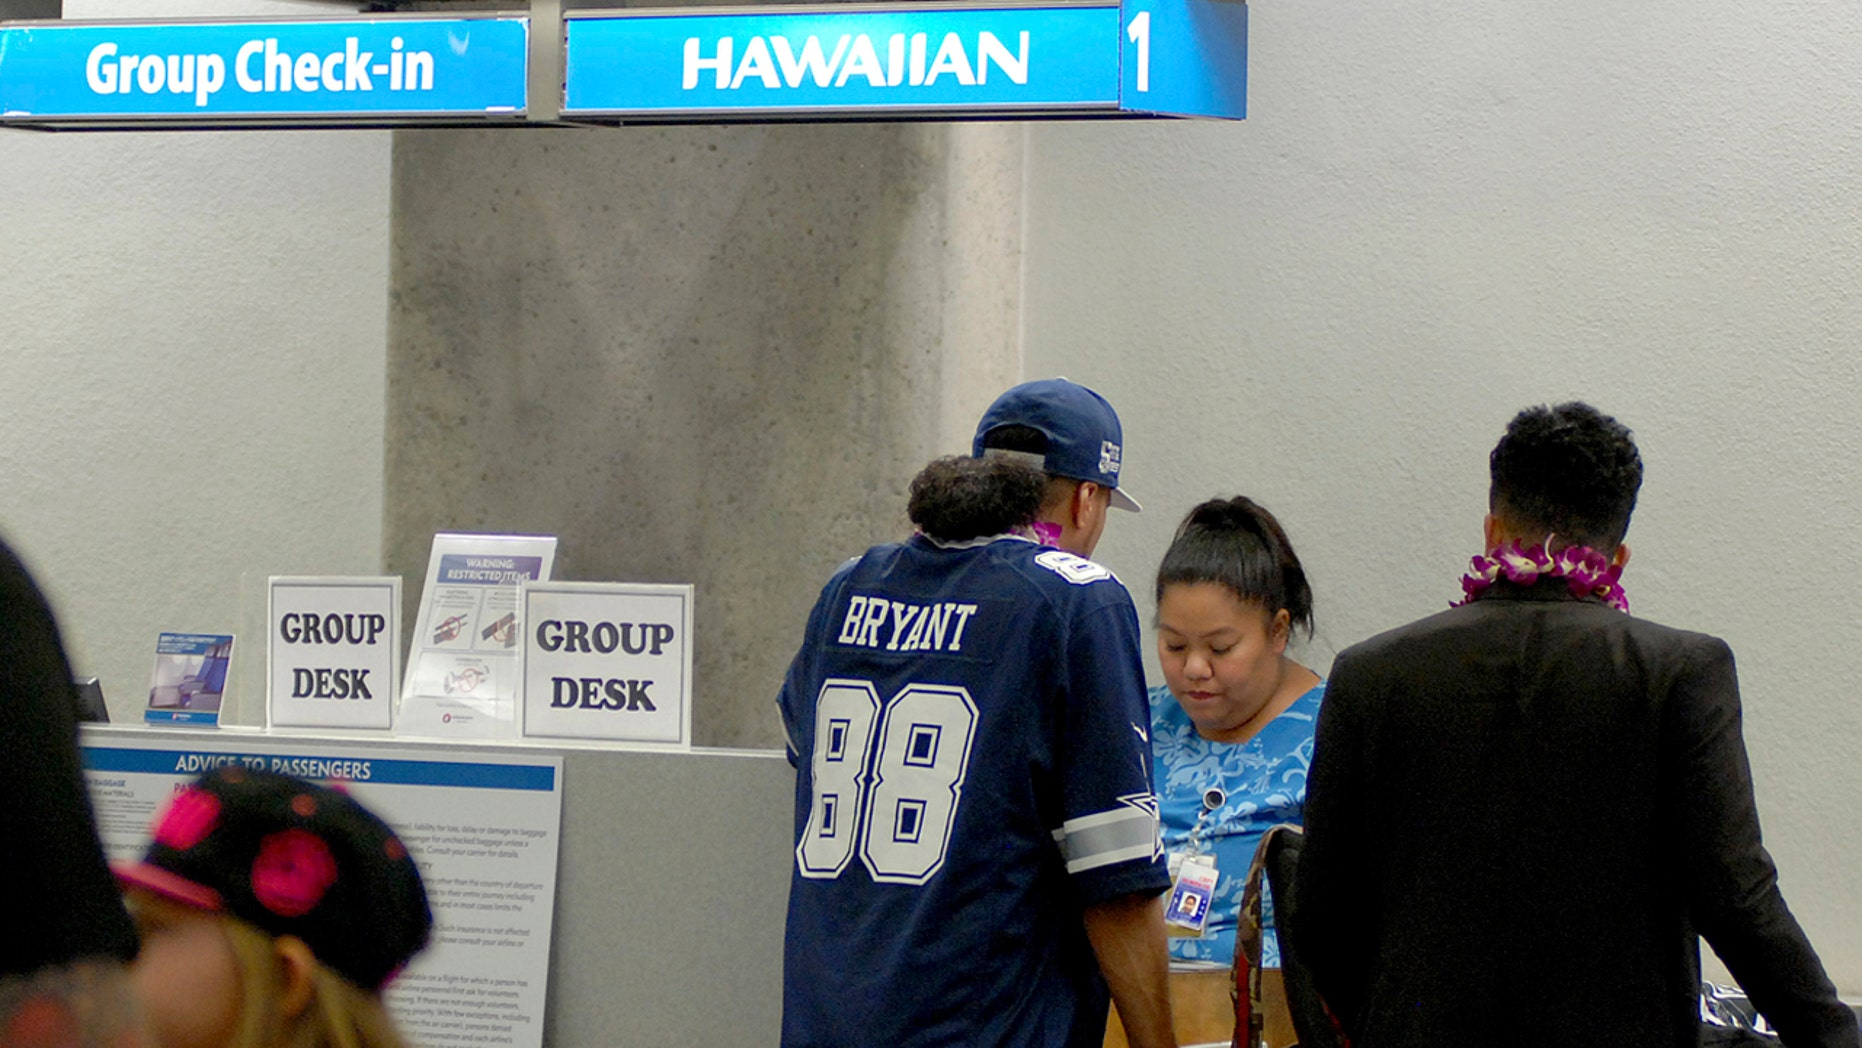 In this Oct. 10, 2016 photo, passengers stand at a Hawaiian Airlines check-in counter before a flight to Pago Pago, American Samoa at Honolulu International Airport in Honolulu.